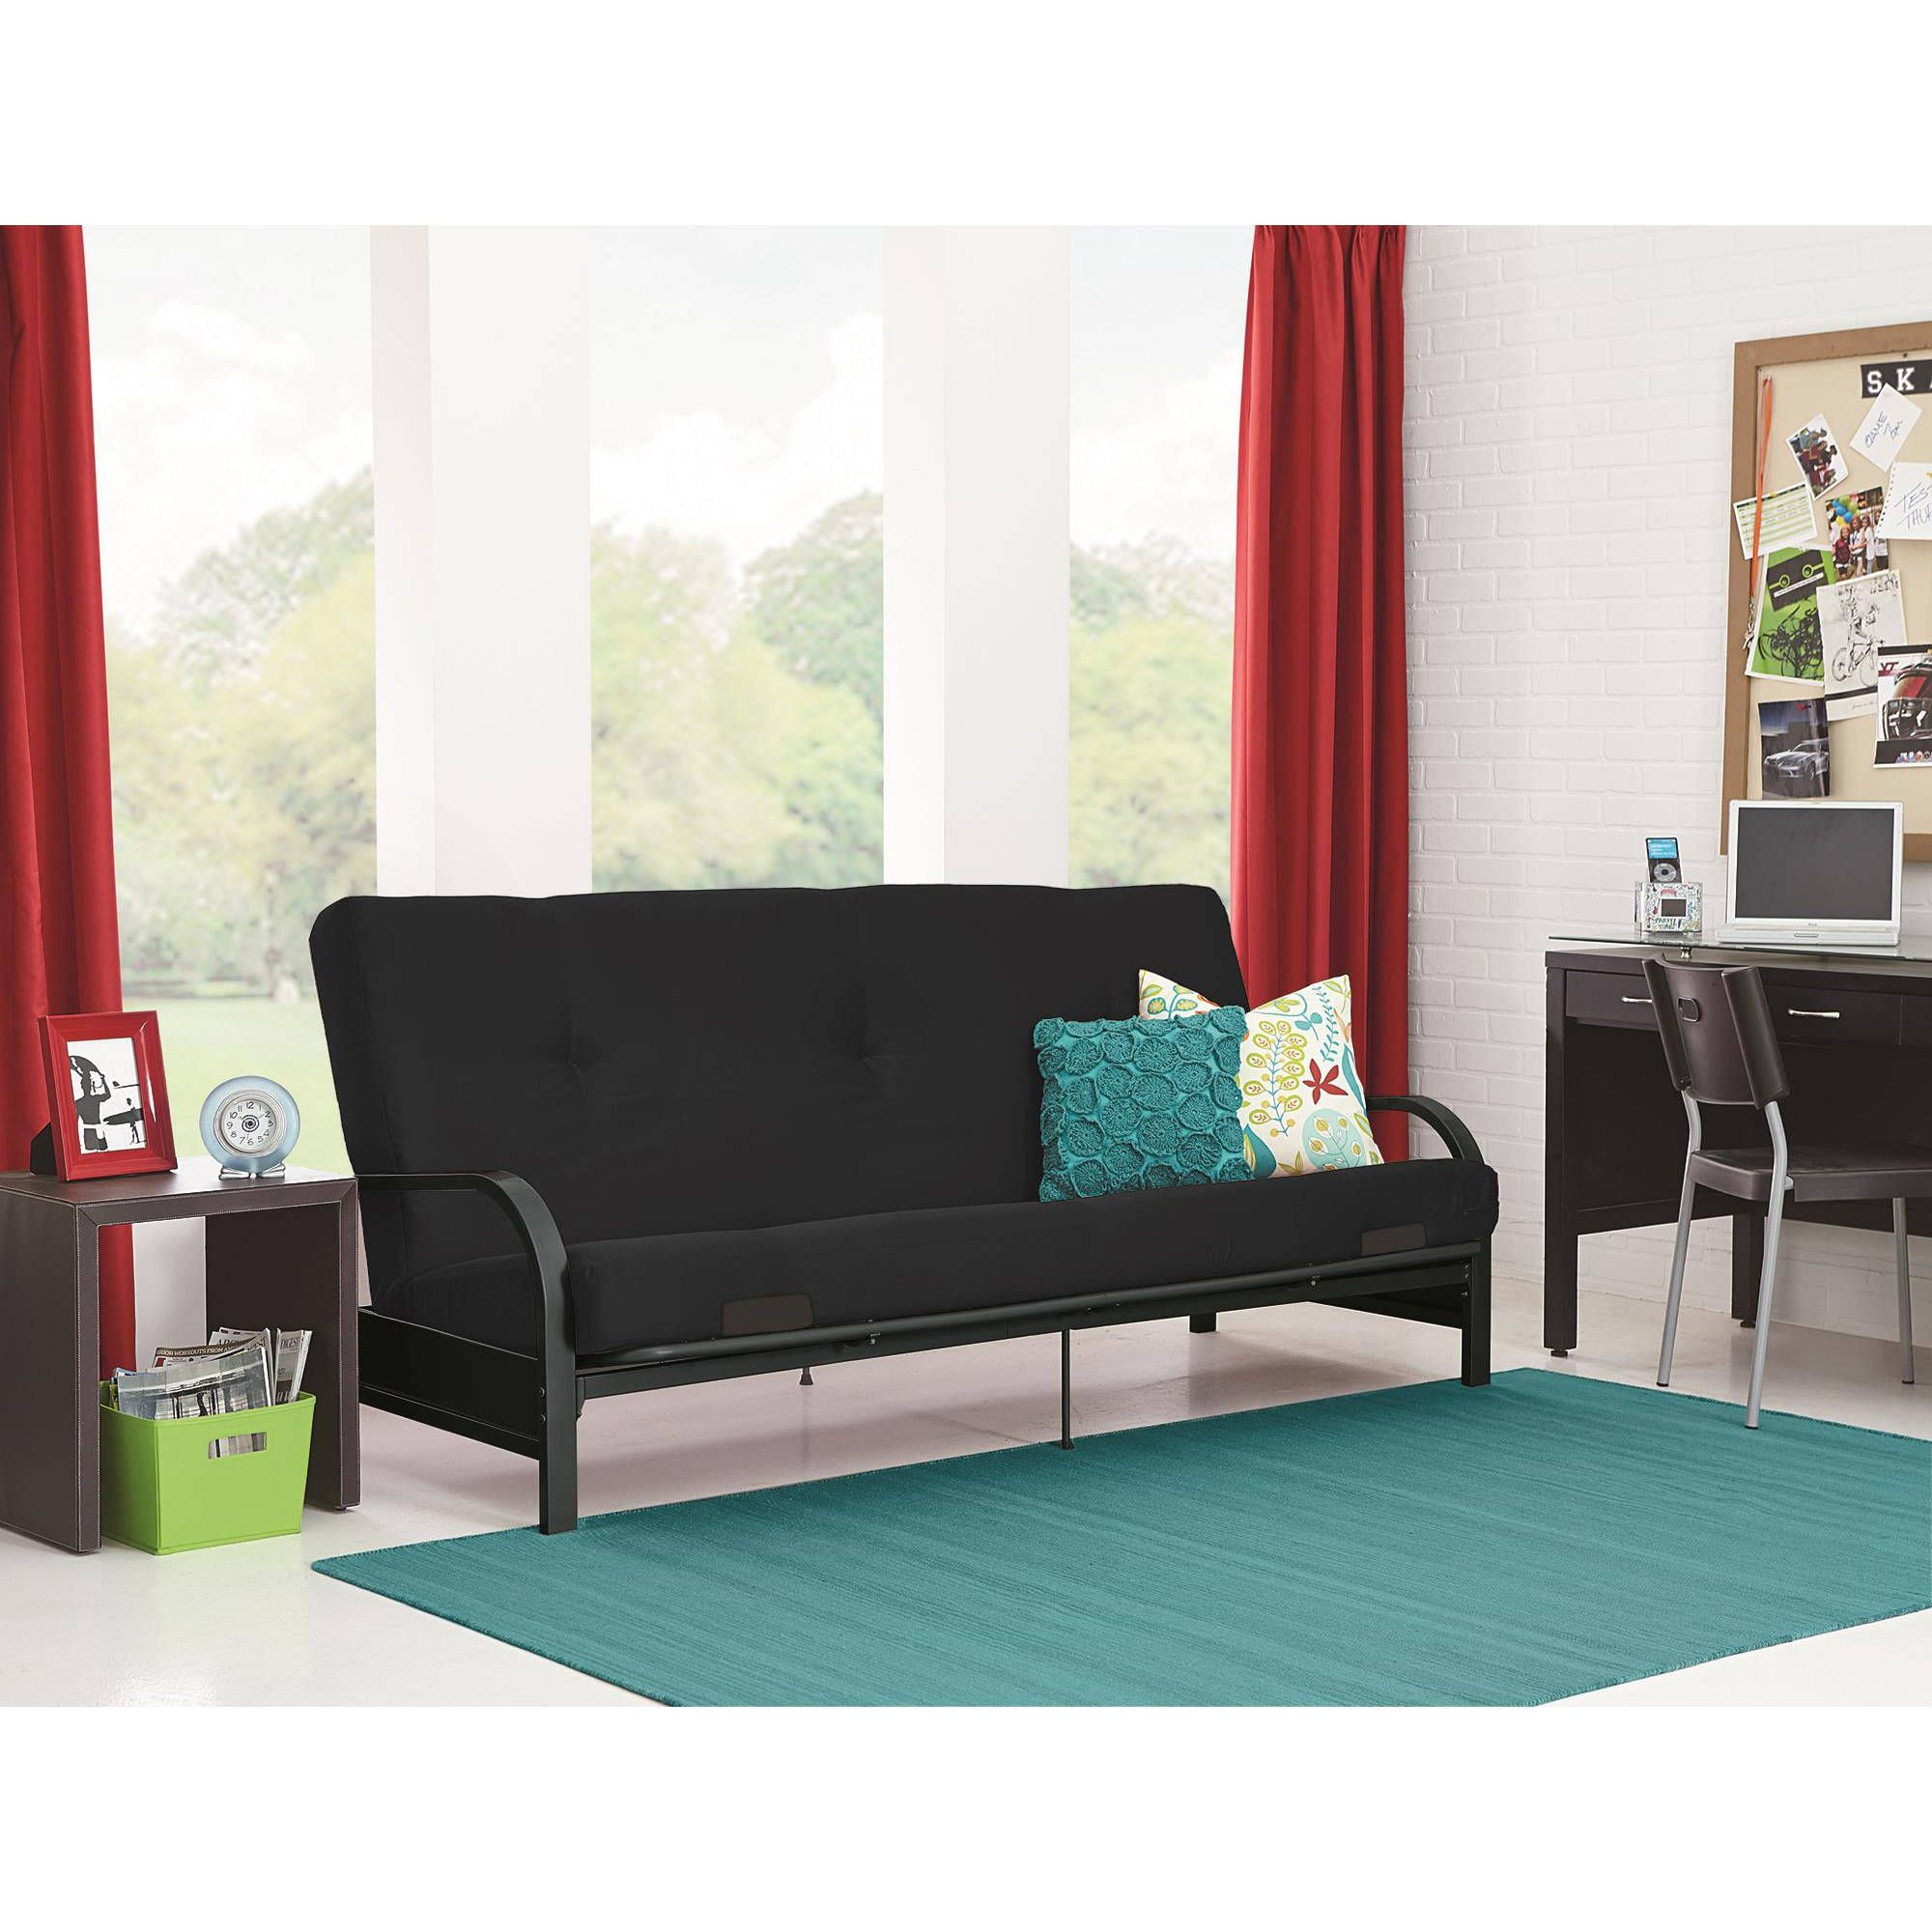 awesome Couch Bed Walmart , Great Couch Bed Walmart 79 Sofa Design ...